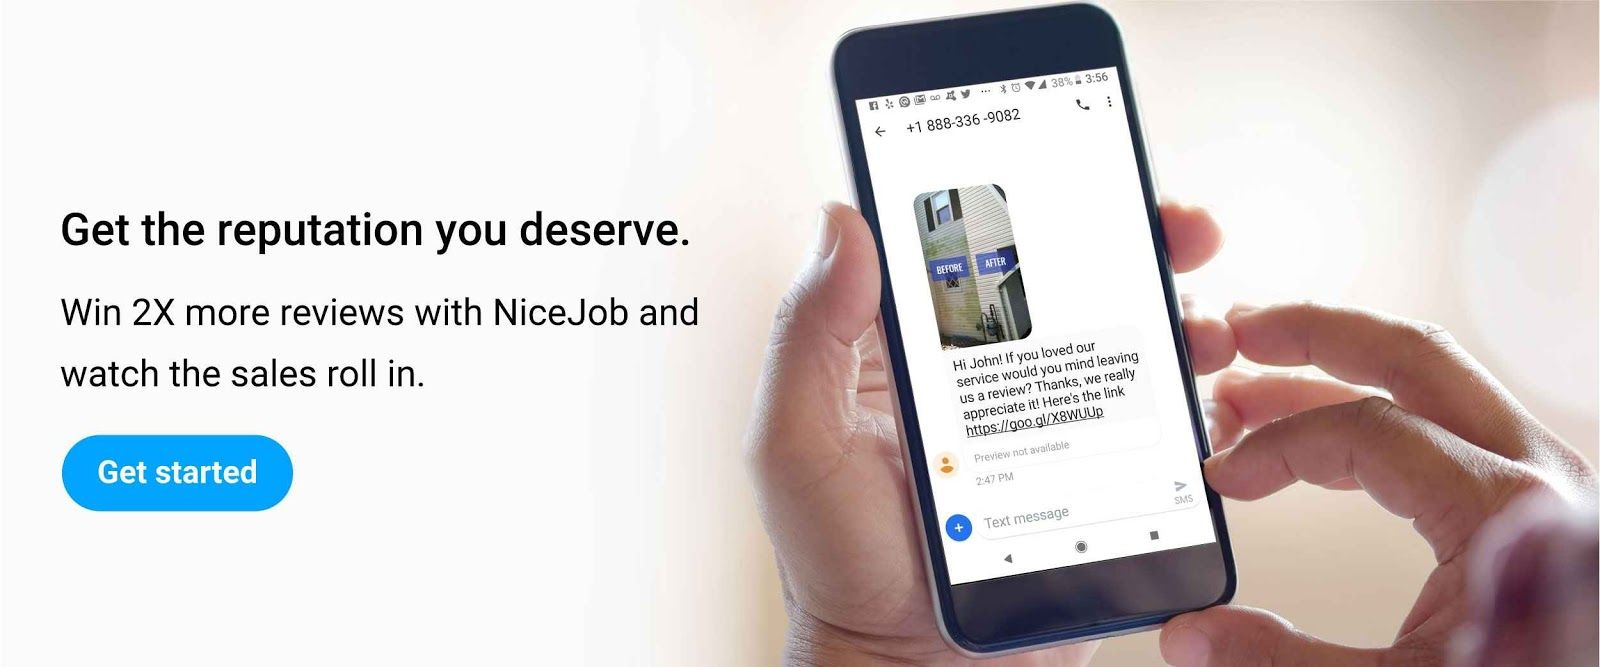 Reputation marketing software from NiceJob to get more reviews.